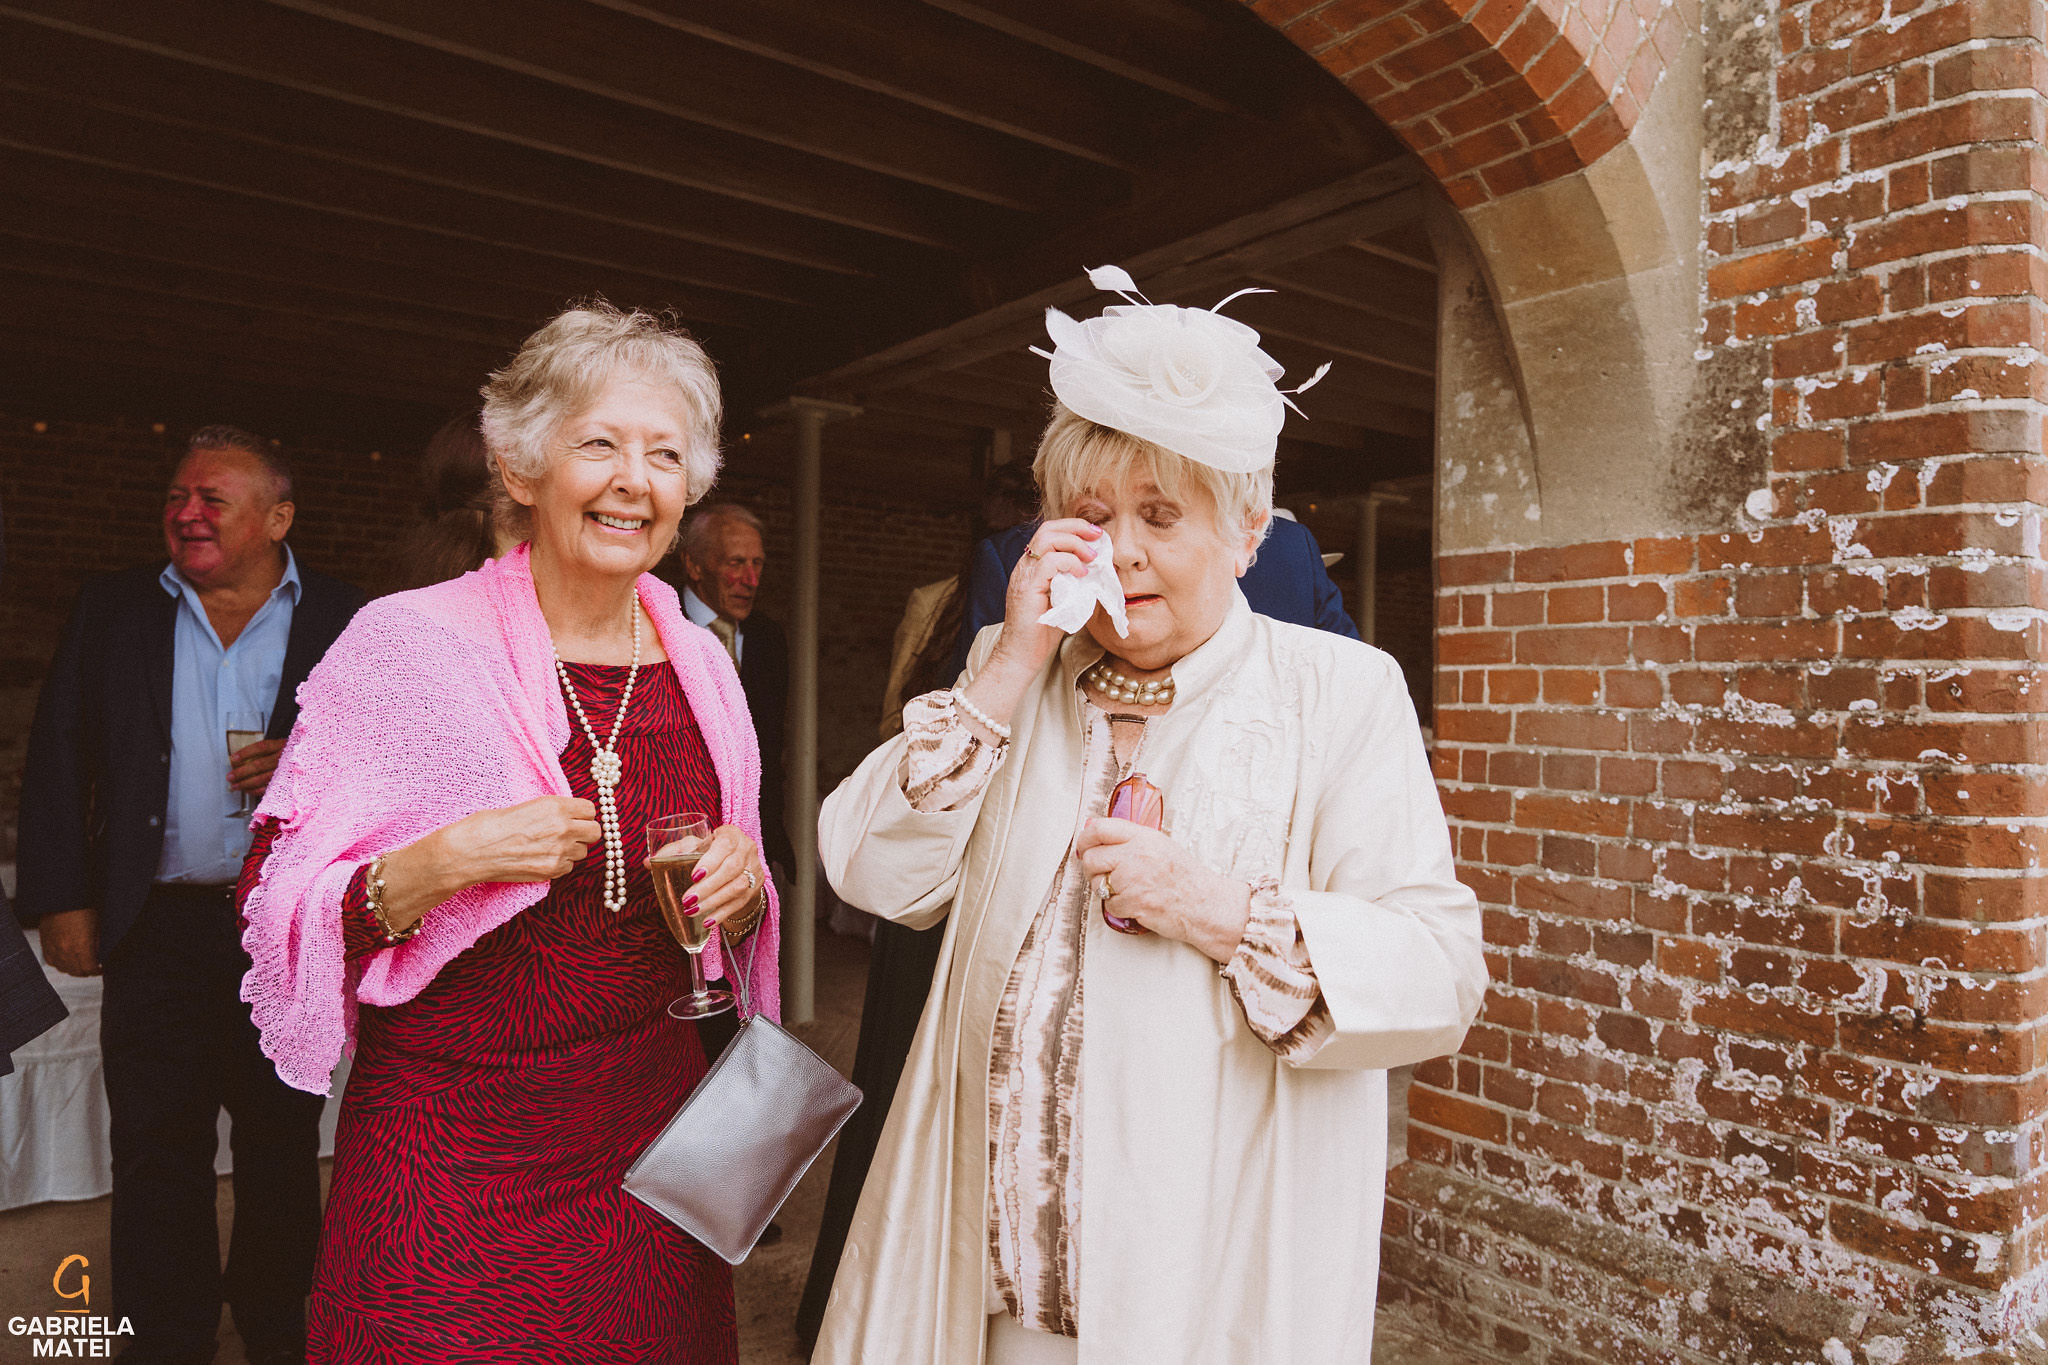 Grandmother of the bride wiping her tears after she saw the bride at South Stoke Barn wedding venue in Arundel